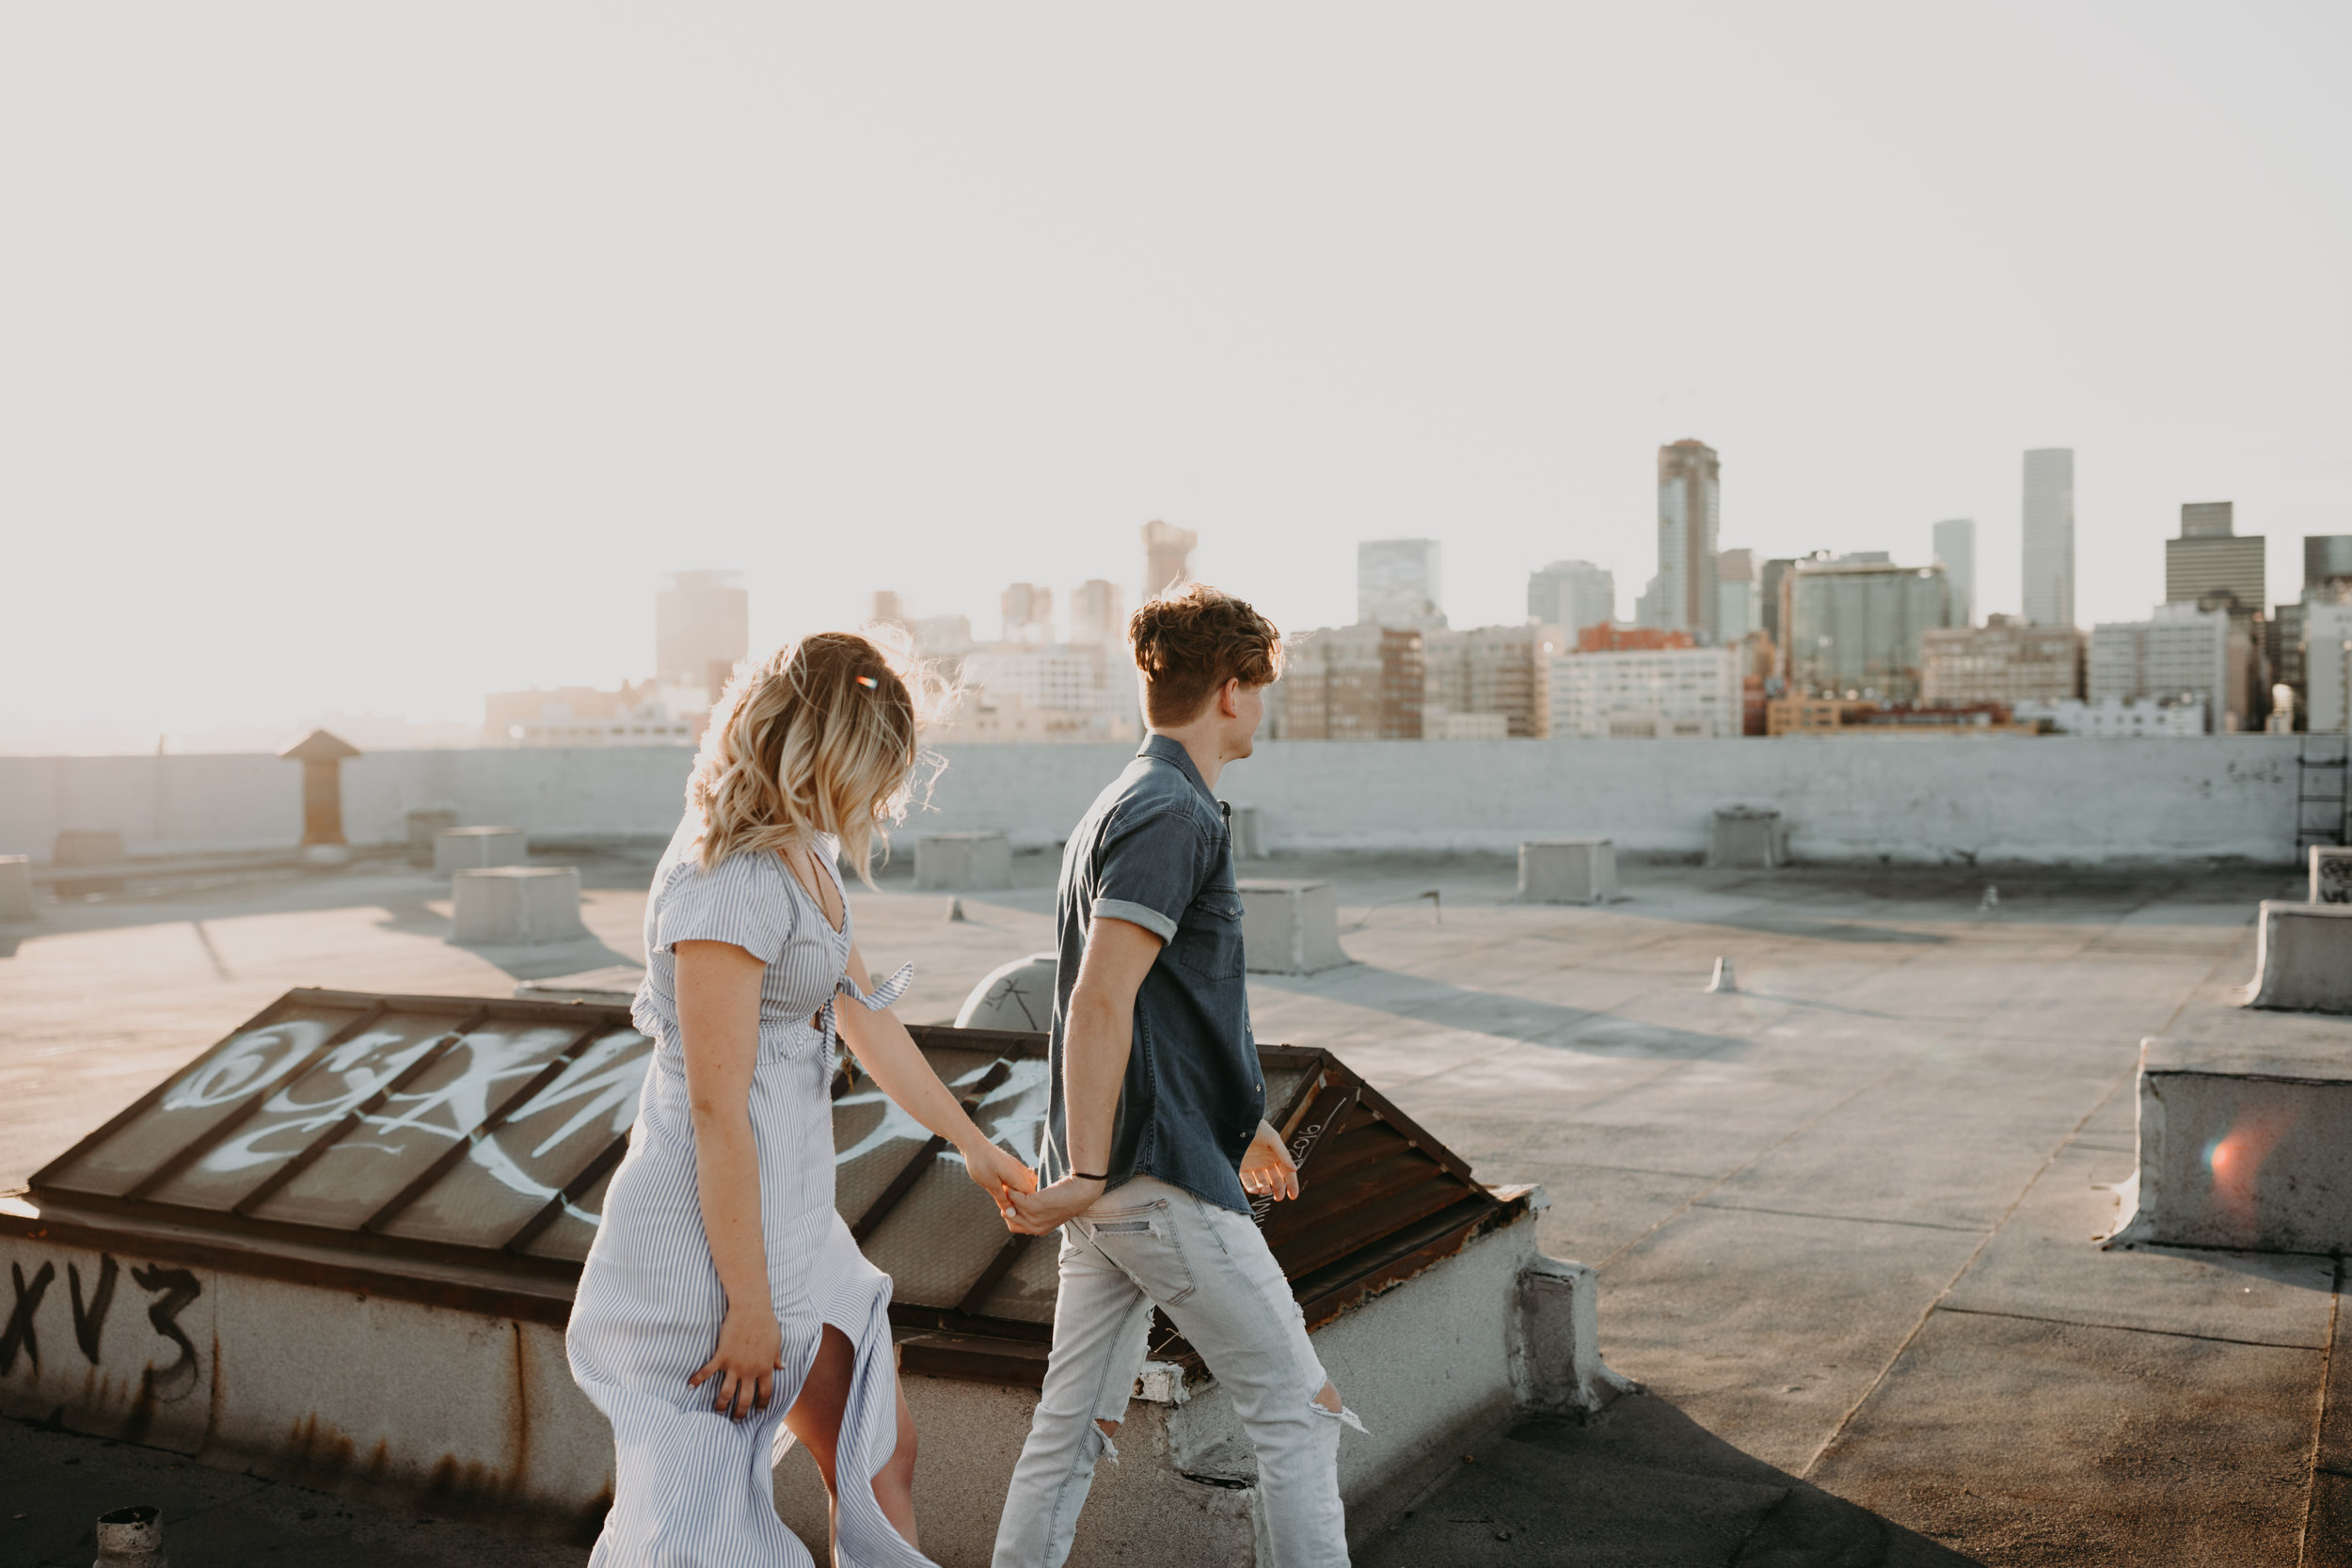 Los Angeles Rooftop Engagement Bayli & Ben  Emily Magers Photography-50.jpg